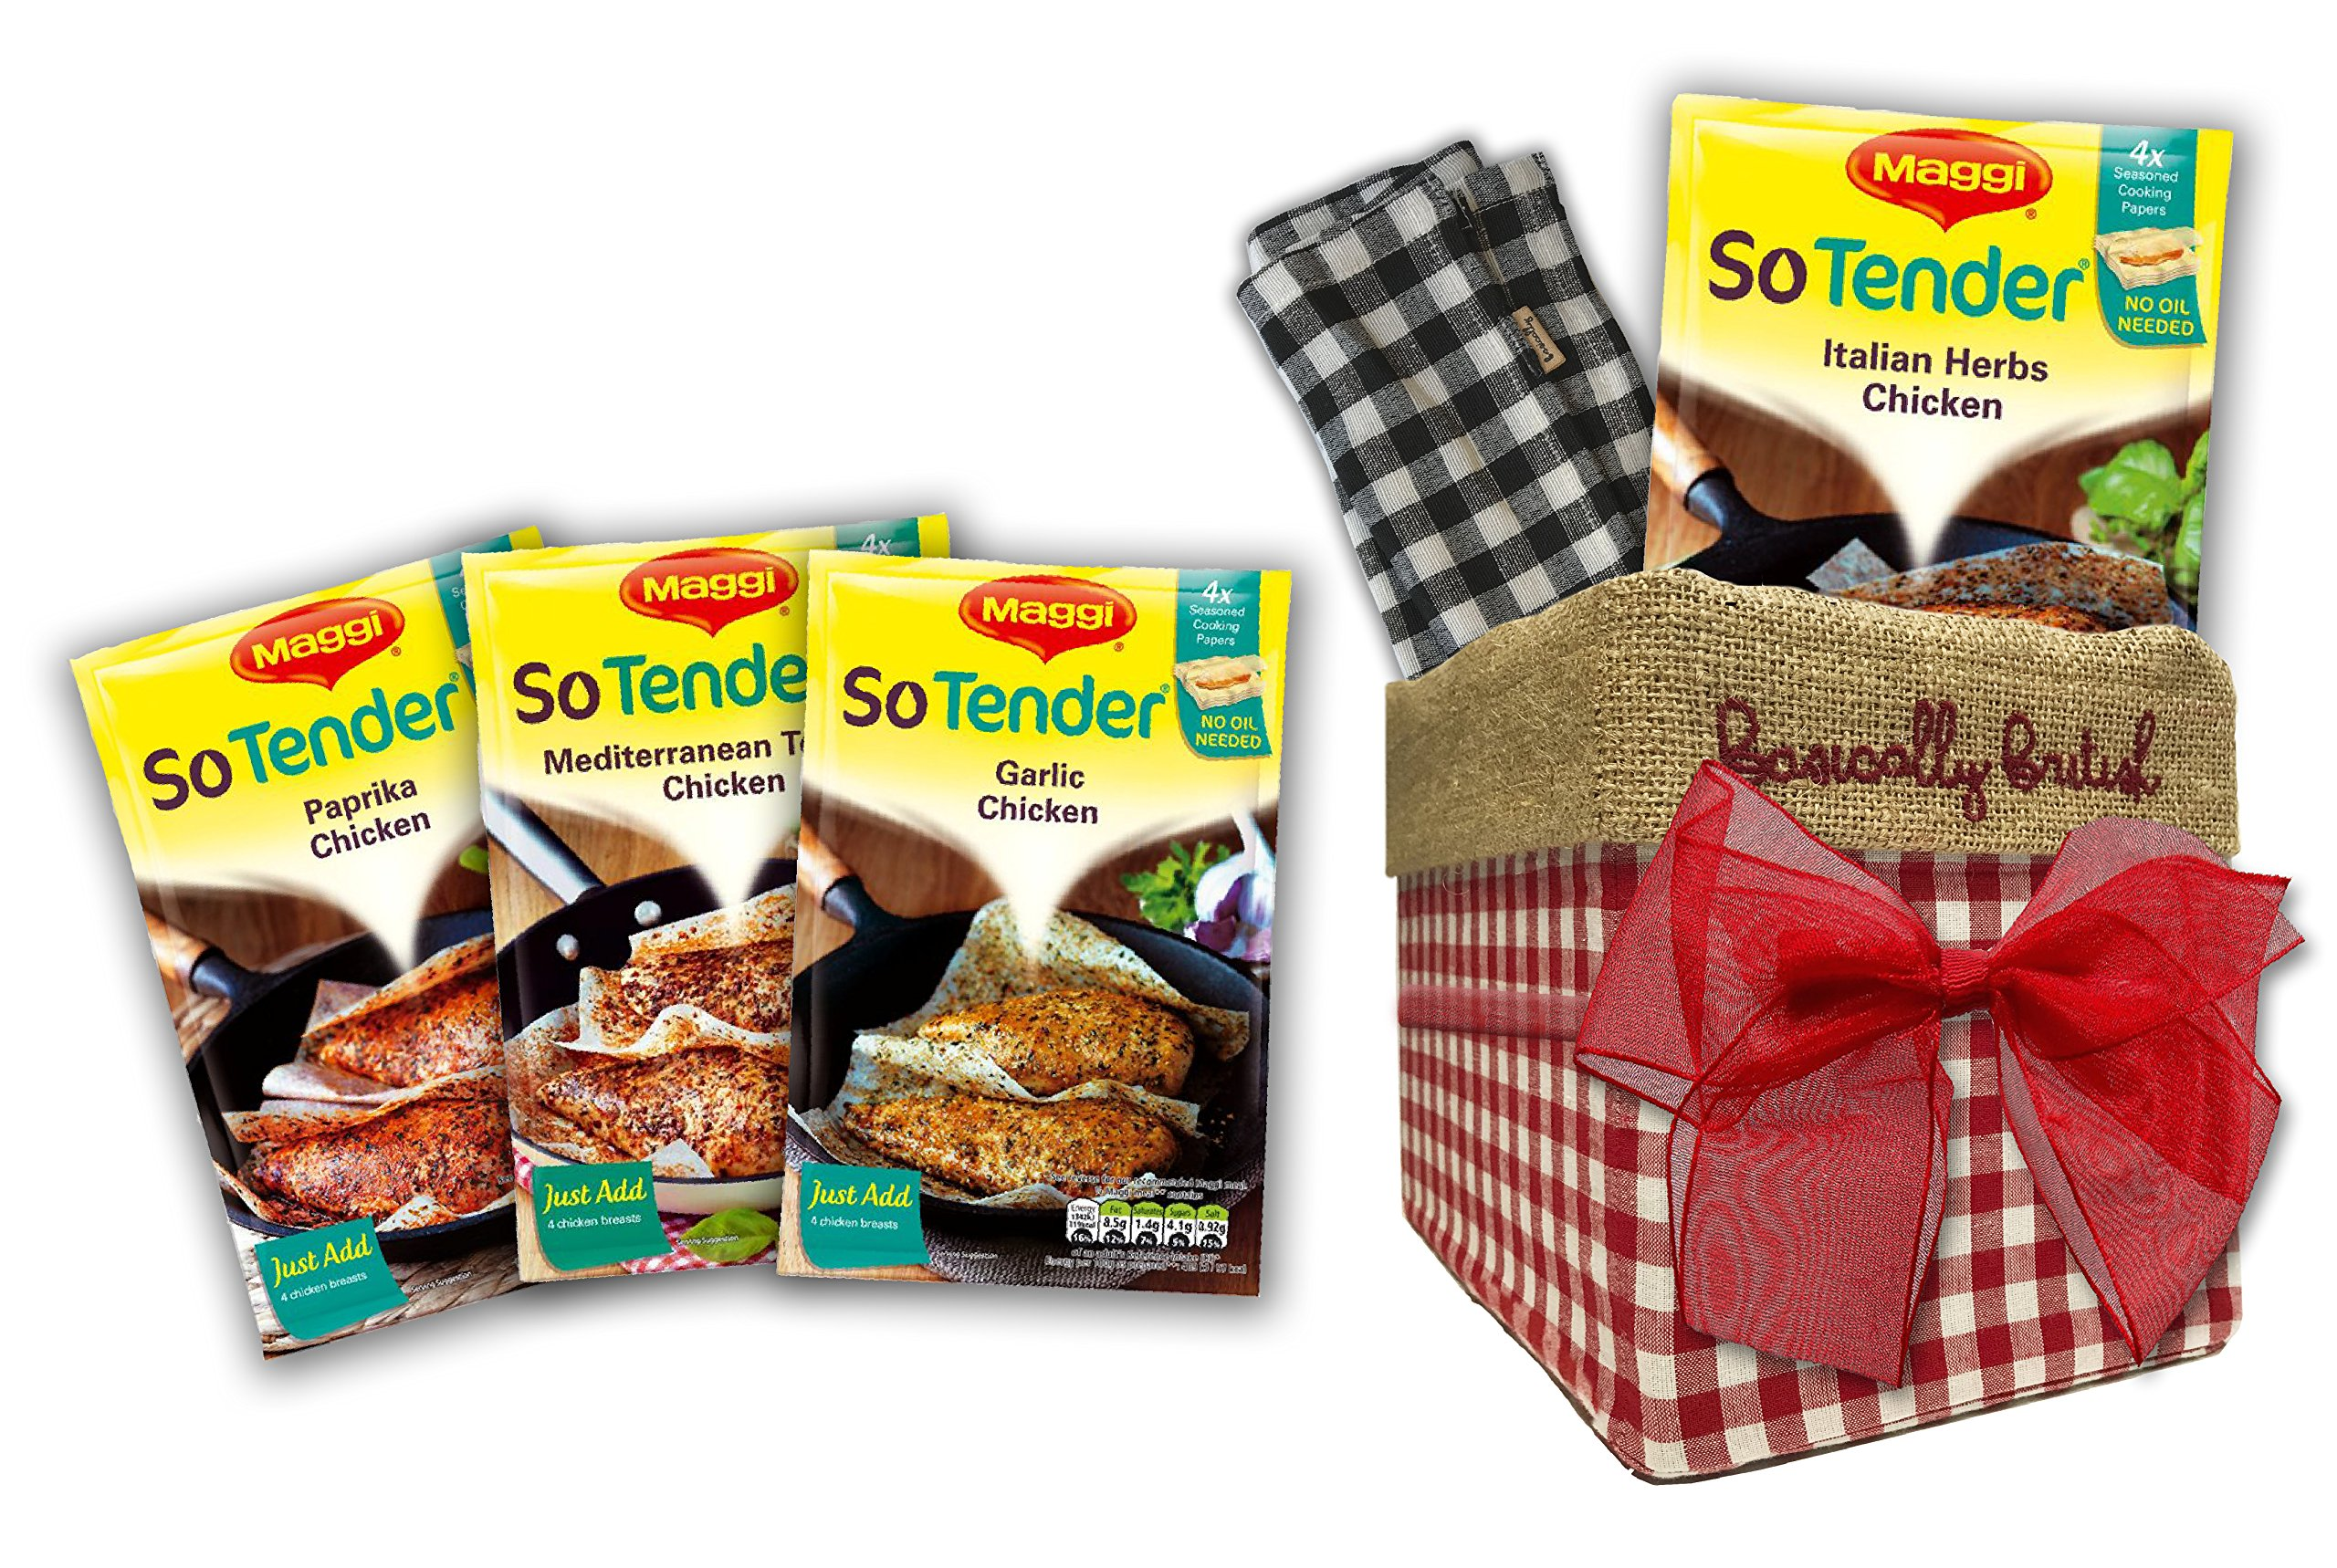 Maggi So Tender British Food variety by The Yummy Palette | Maggi So Tender Paprika Maggi So Tender Italian Herbs in Traditional Basically Britsh Hand Embroidered Box by The Yummy Palette